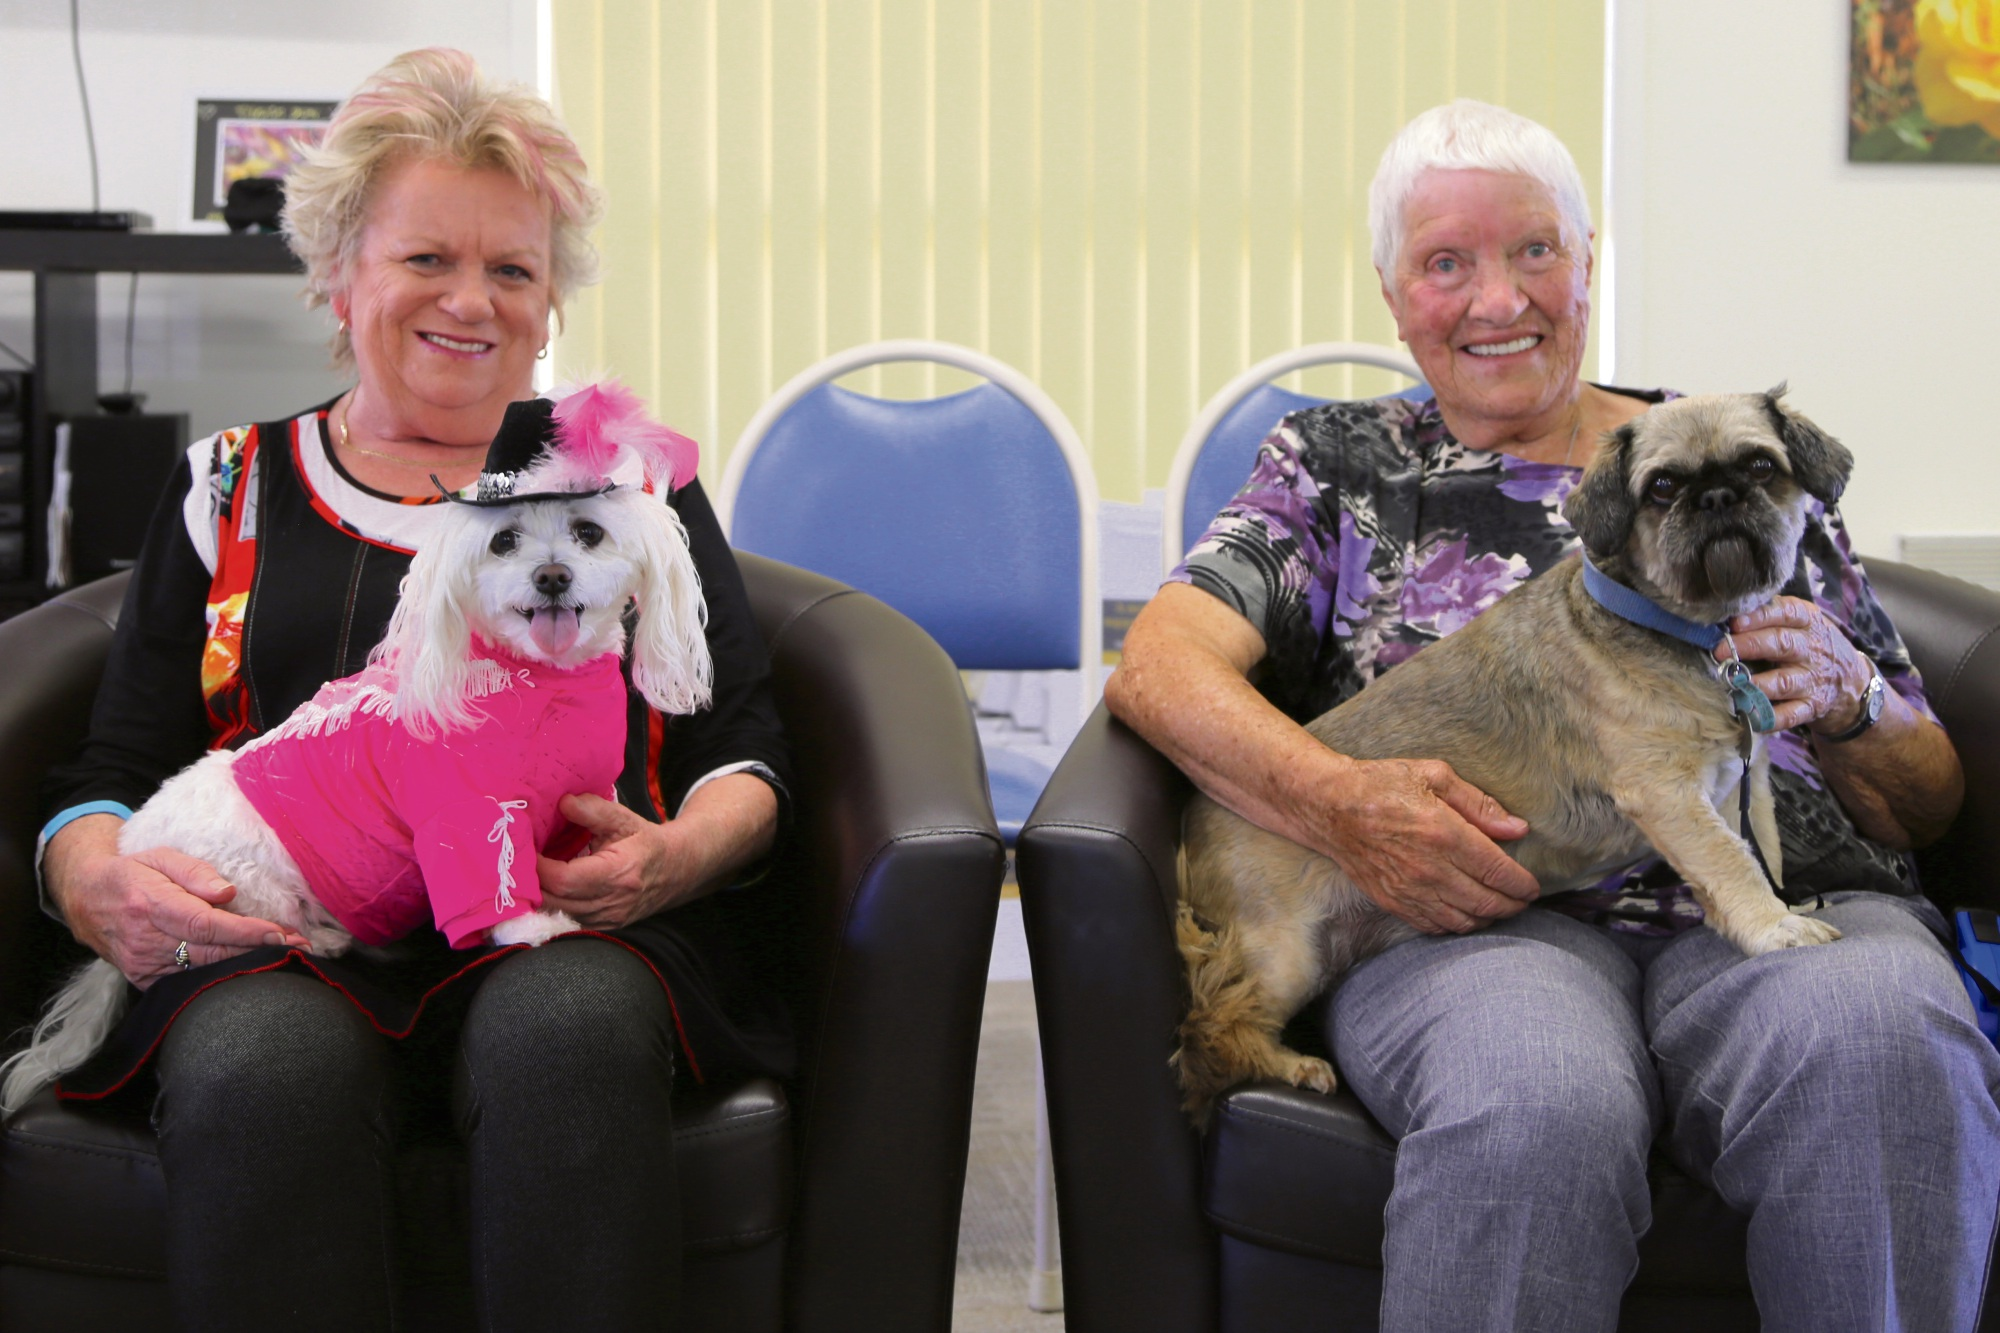 Ingenia Gardens residents helped raise money for the RSPCA.